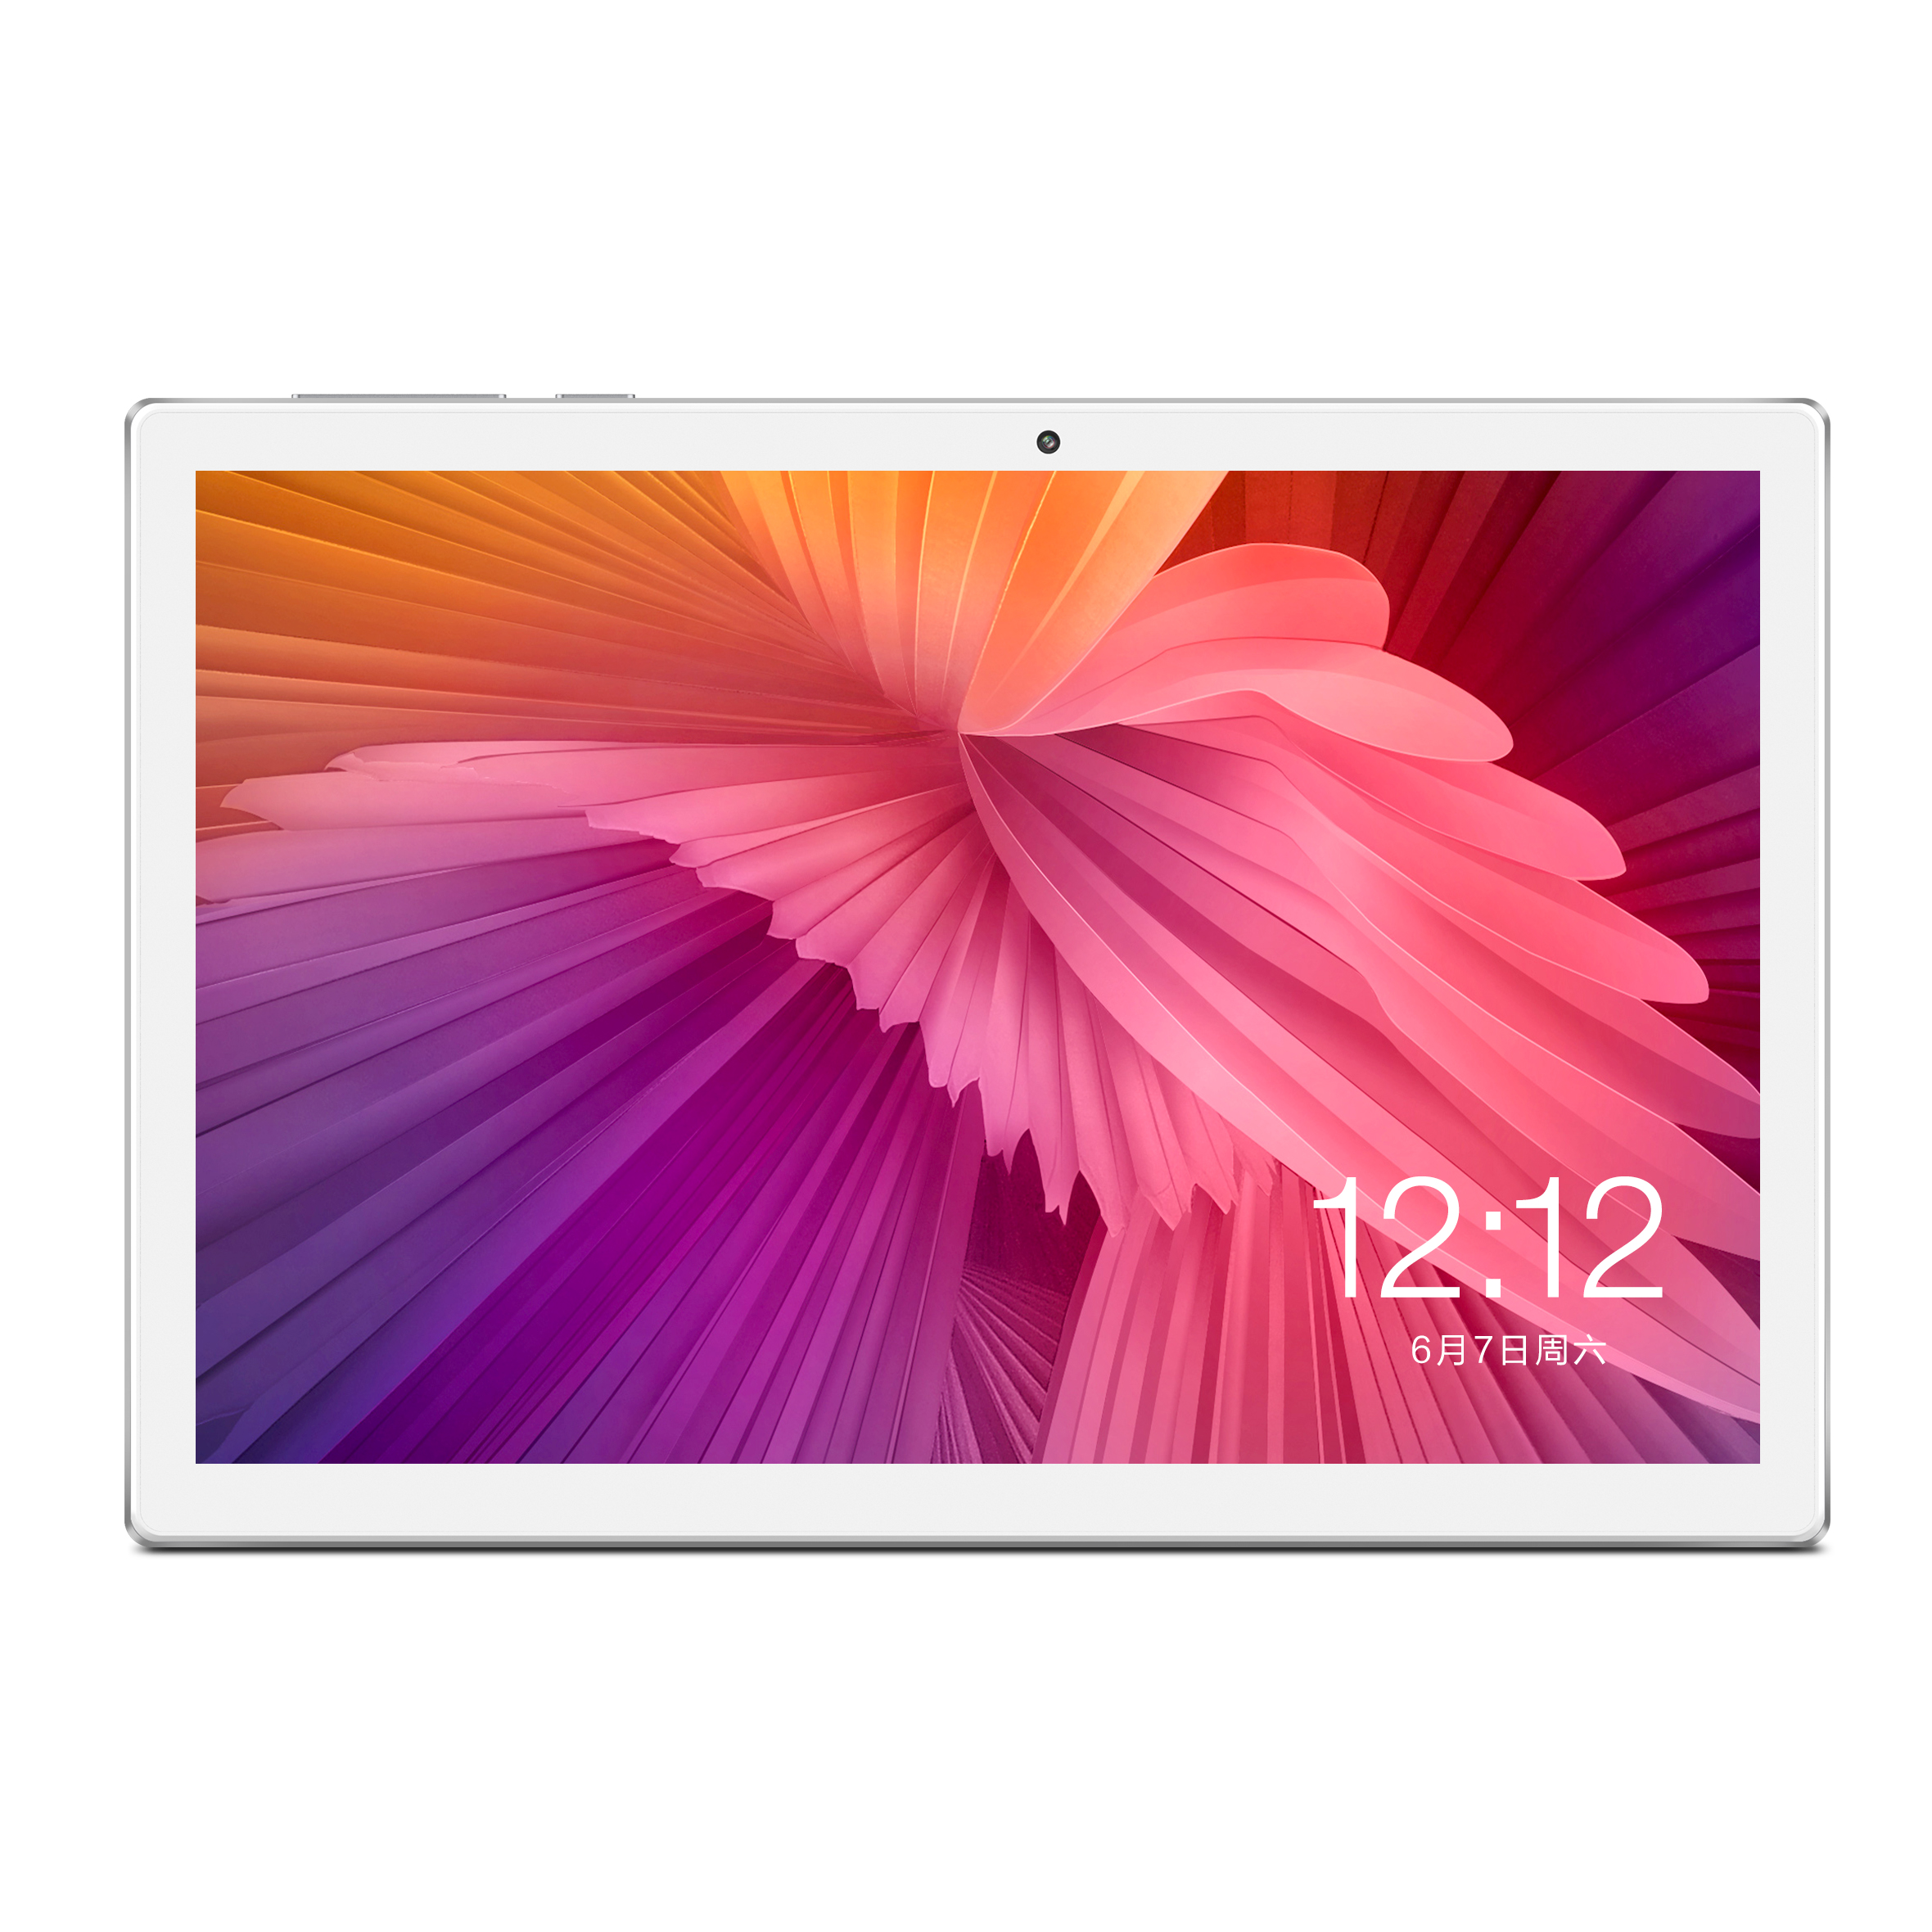 Teclast M30 10.1 Inch 4G Android 8.0 MT6797X ( X27 ) 1.4GHz Decore CPU 3GB RAM 64GB ROM 5.0MP+2.0MP Type-C Phone Call Tablet PC